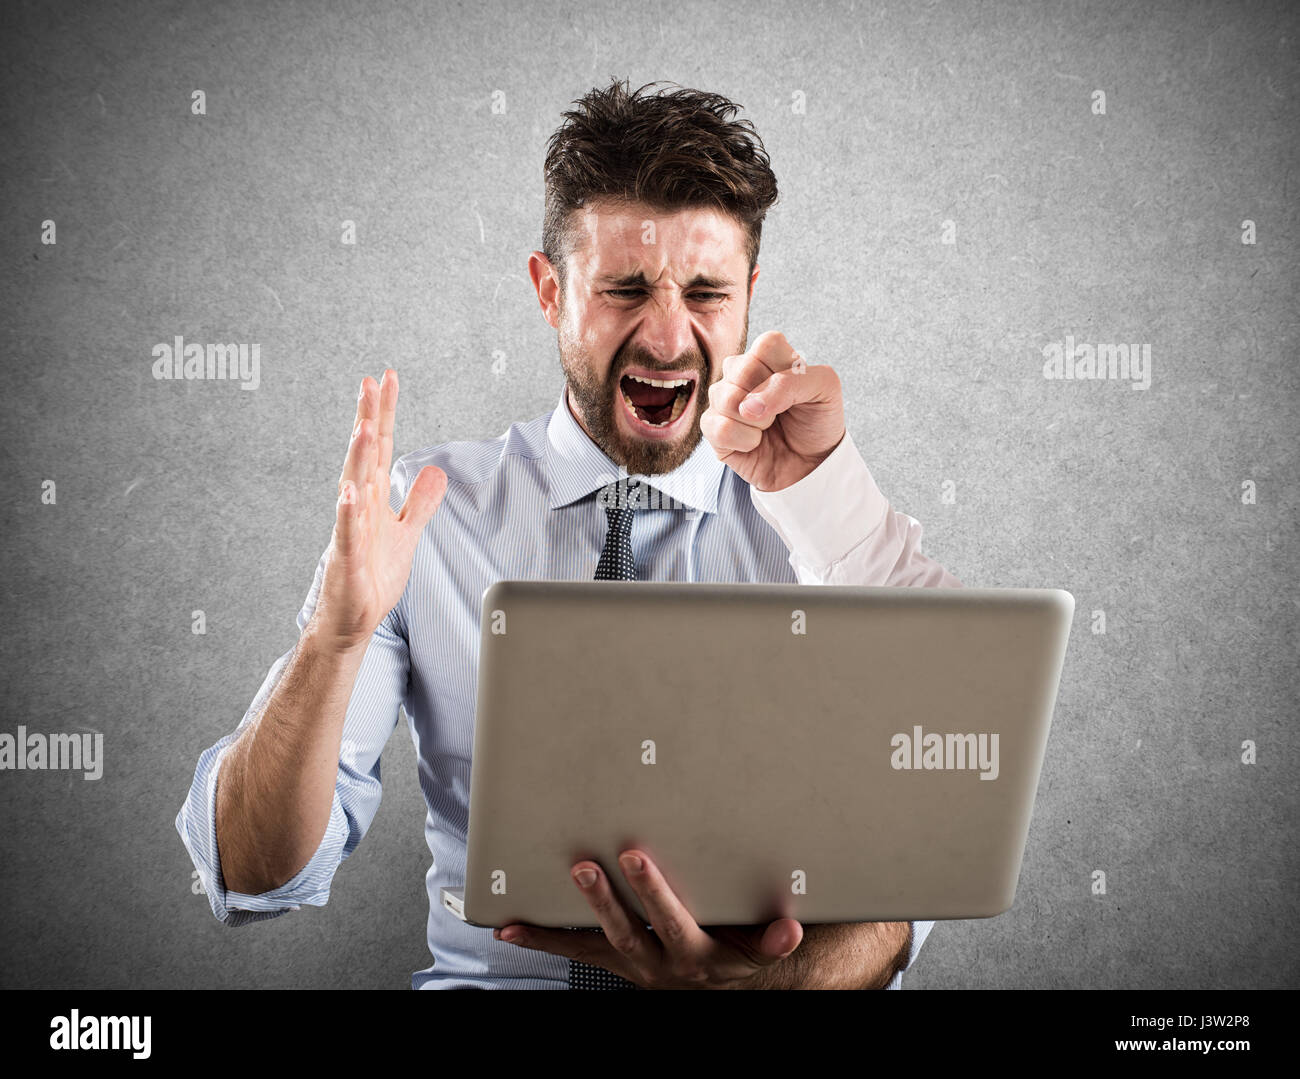 Cyber bullying - Stock Image